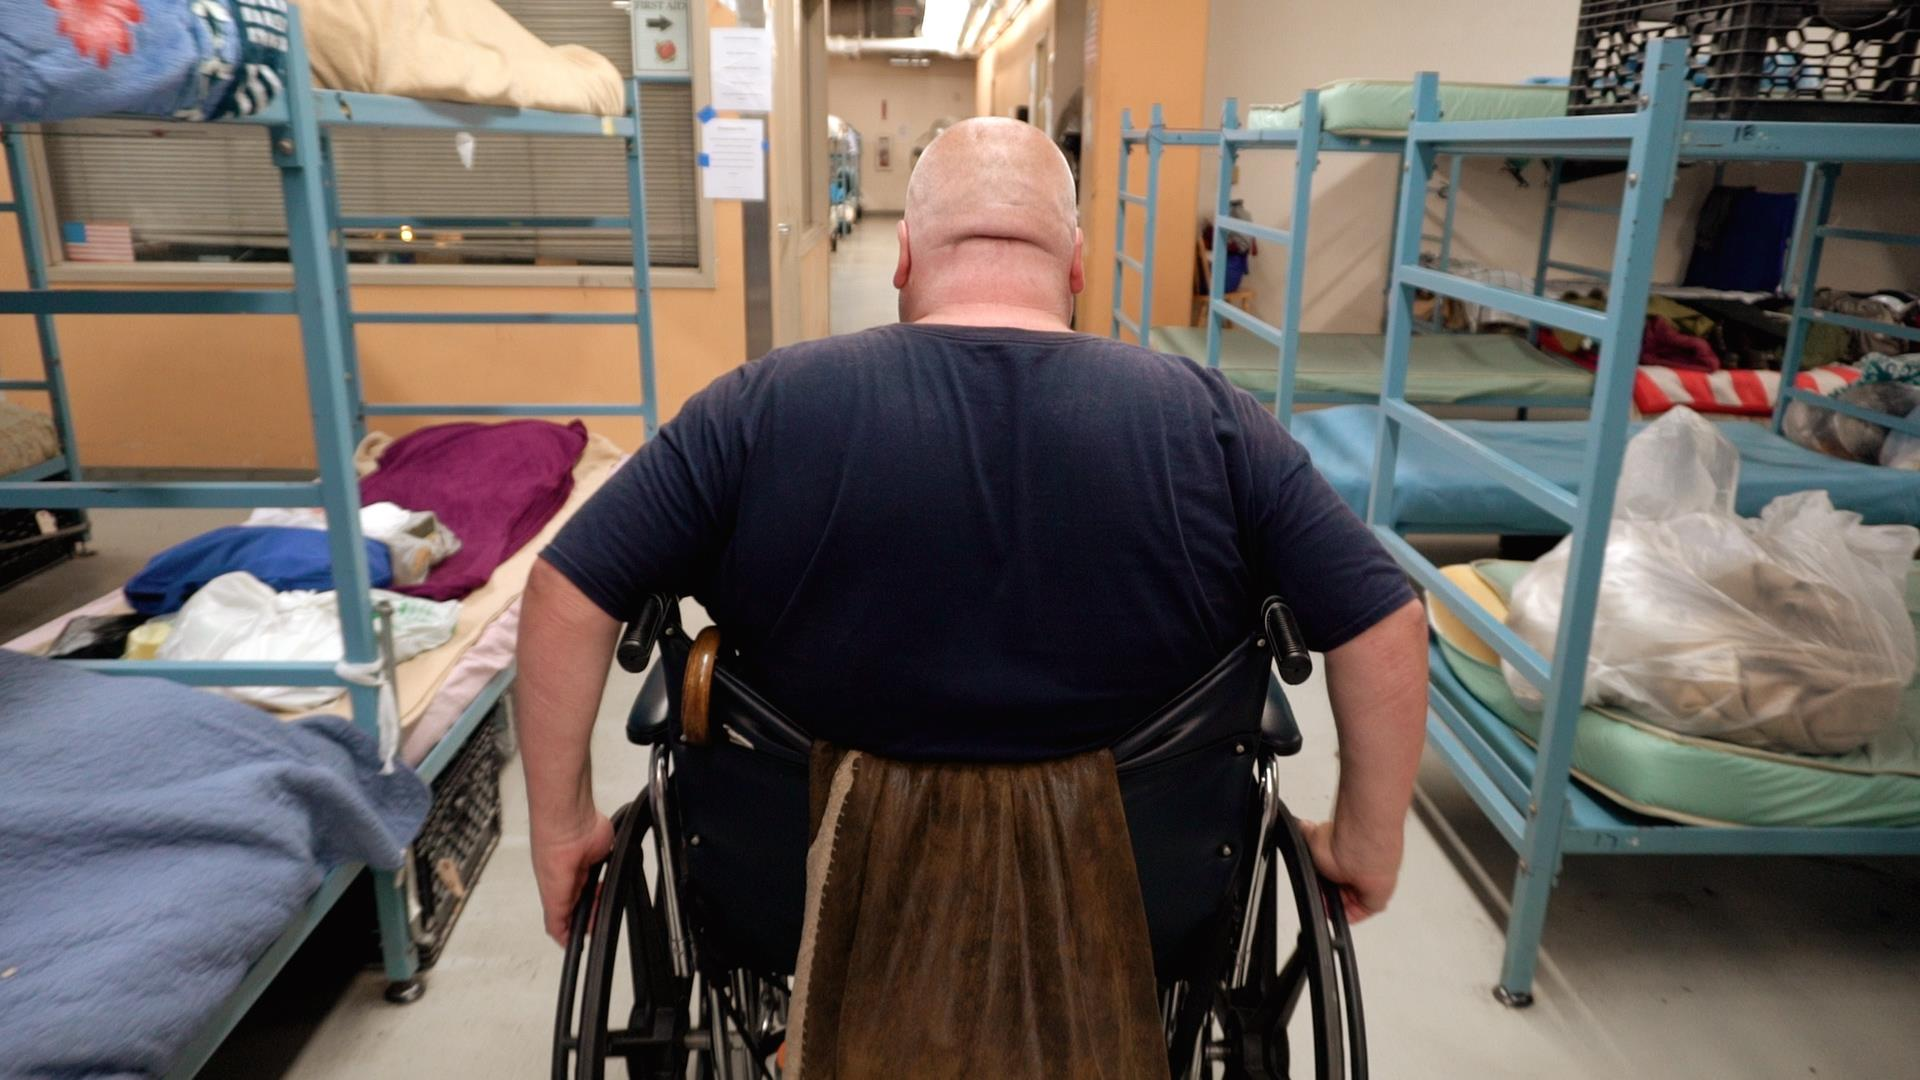 Some nursing homes are illegally evicting elderly and disabled residents who can't afford to pay